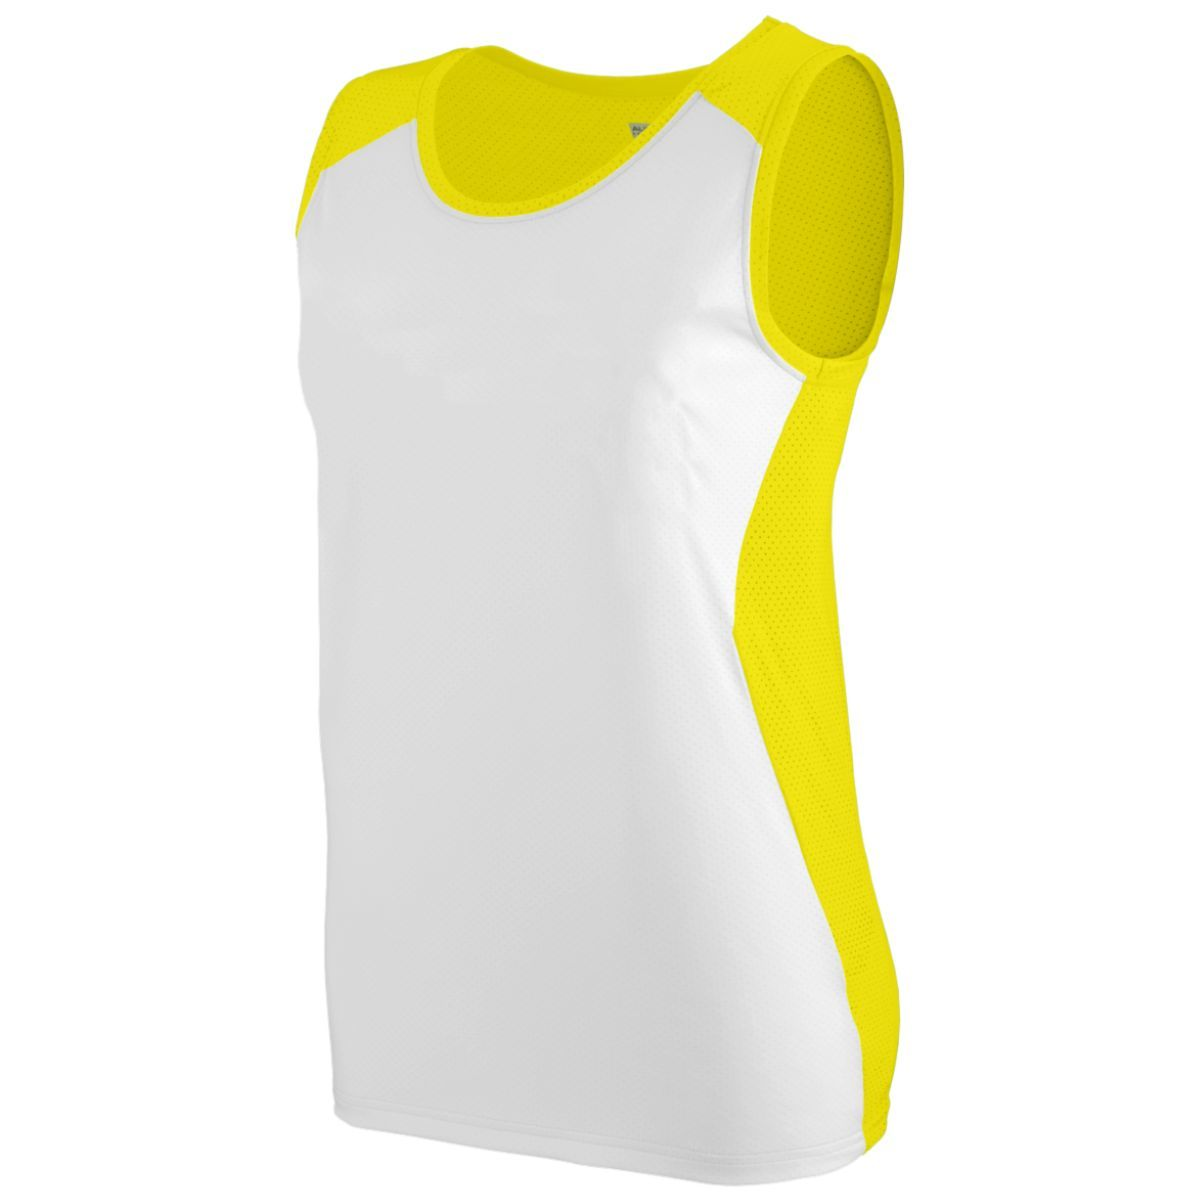 Ladies Alize Jersey - POWER YELLOW/WHITE